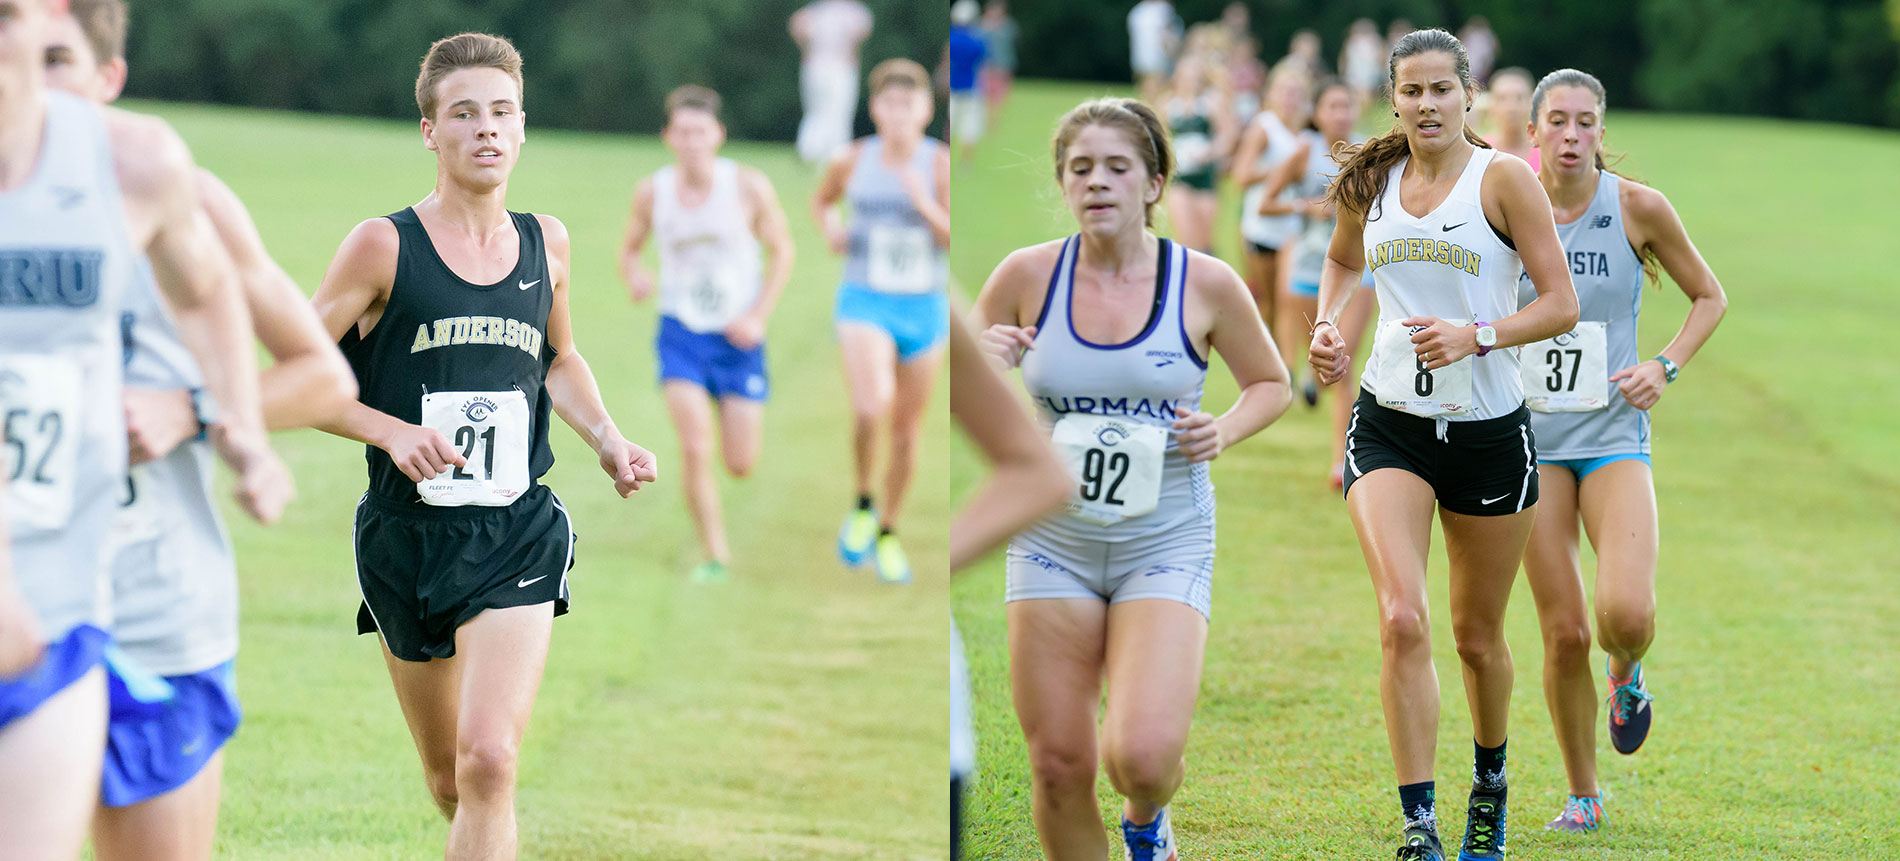 Cross Country Returns to Spartanburg for USC Upstate Invitational